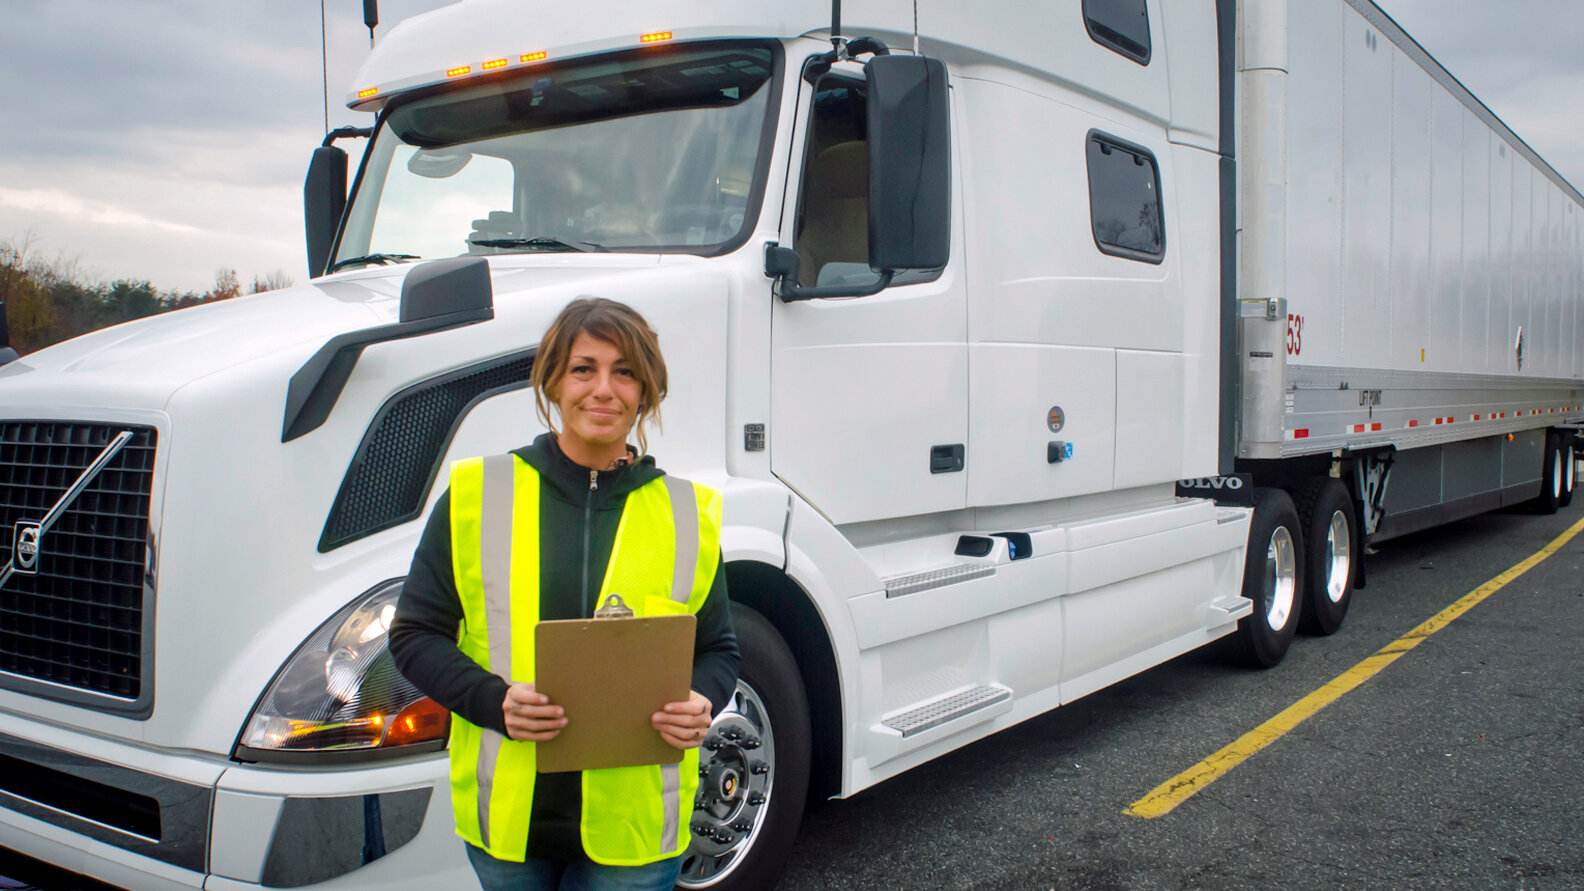 Recruiting and retaining female drivers was tackled at the Women In Trucking conference earlier this month. (Photo: Jim Allen/FreightWaves)